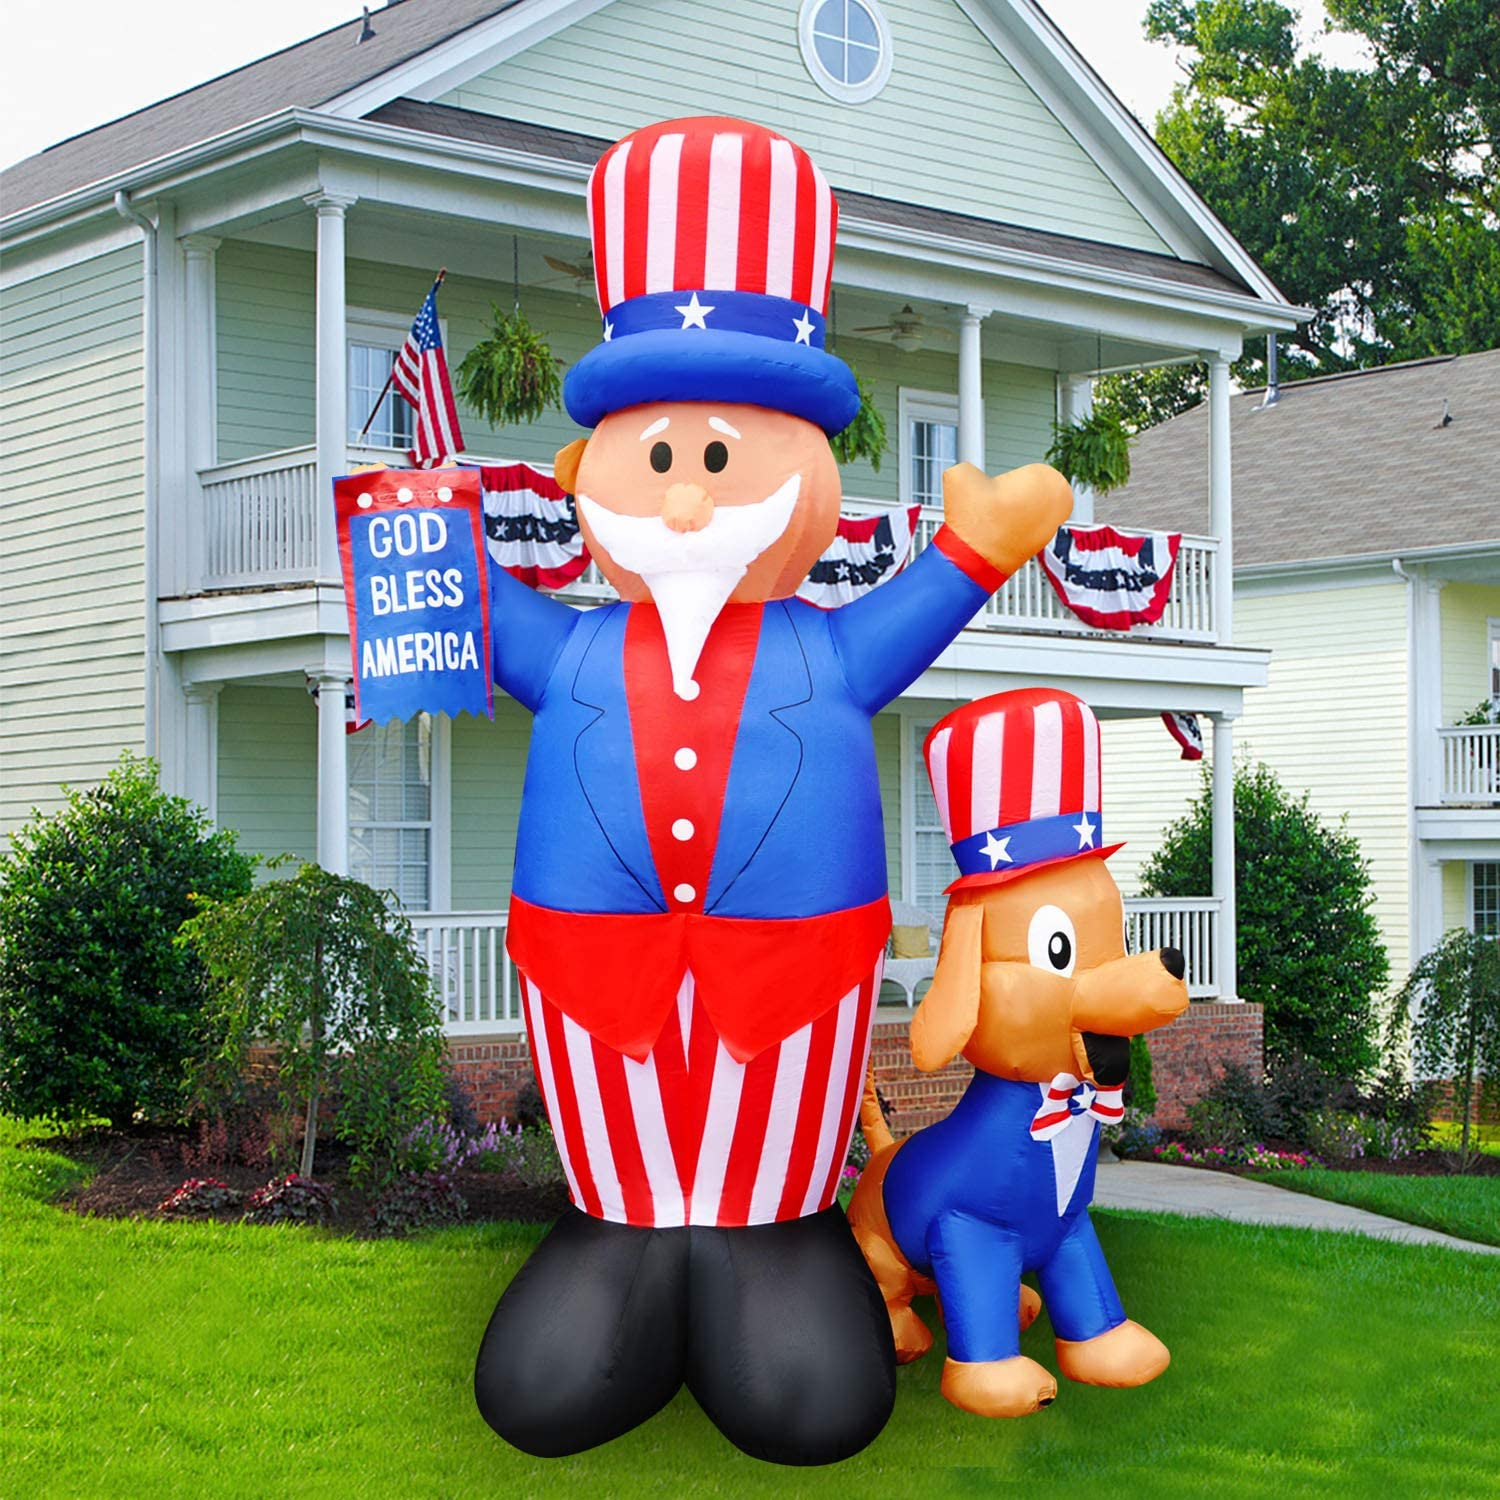 SEASONBLOW 7 Ft Patriotic Independence Day 4th of July Inflatable Uncle Sam with Dog & American Flag Decor Home Yard Outdoor Indoor Decoration